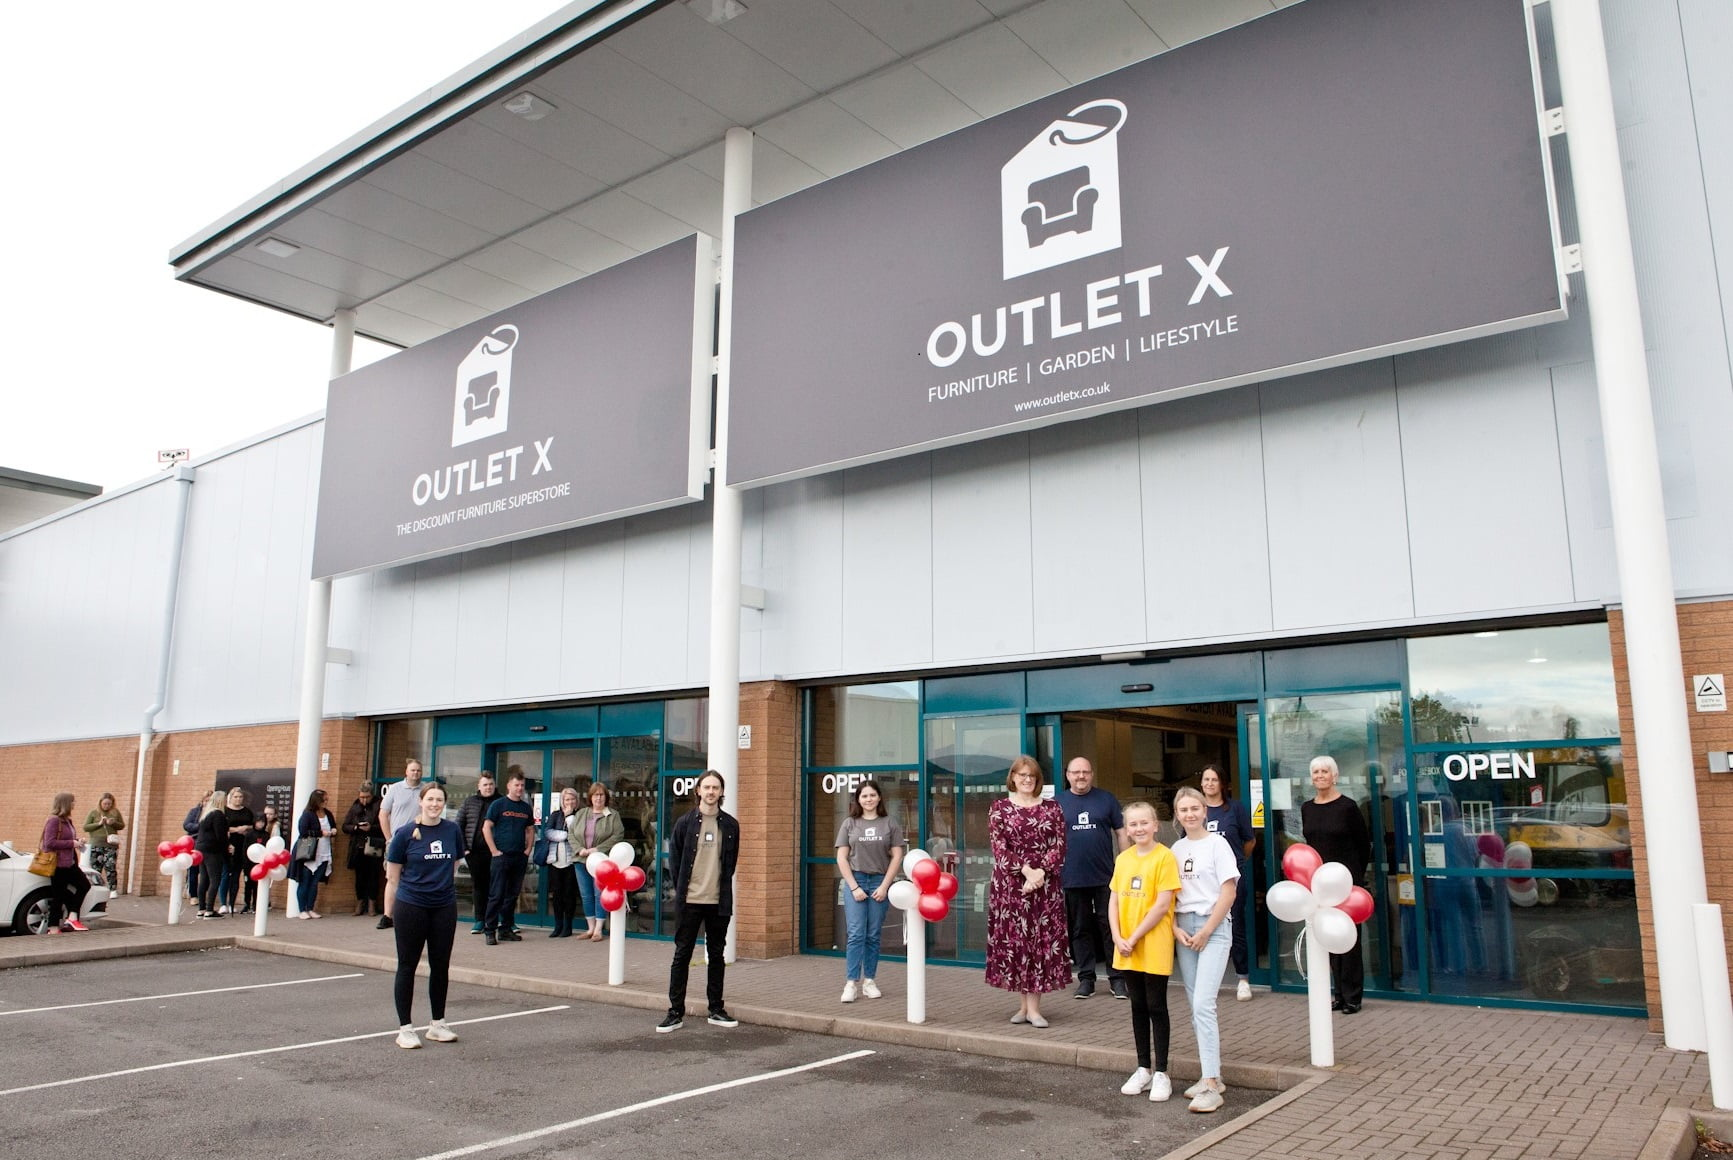 Liz Lowe, Head of Estates at Morris Property (centre in floral dress) with the Outlet X team and shoppers